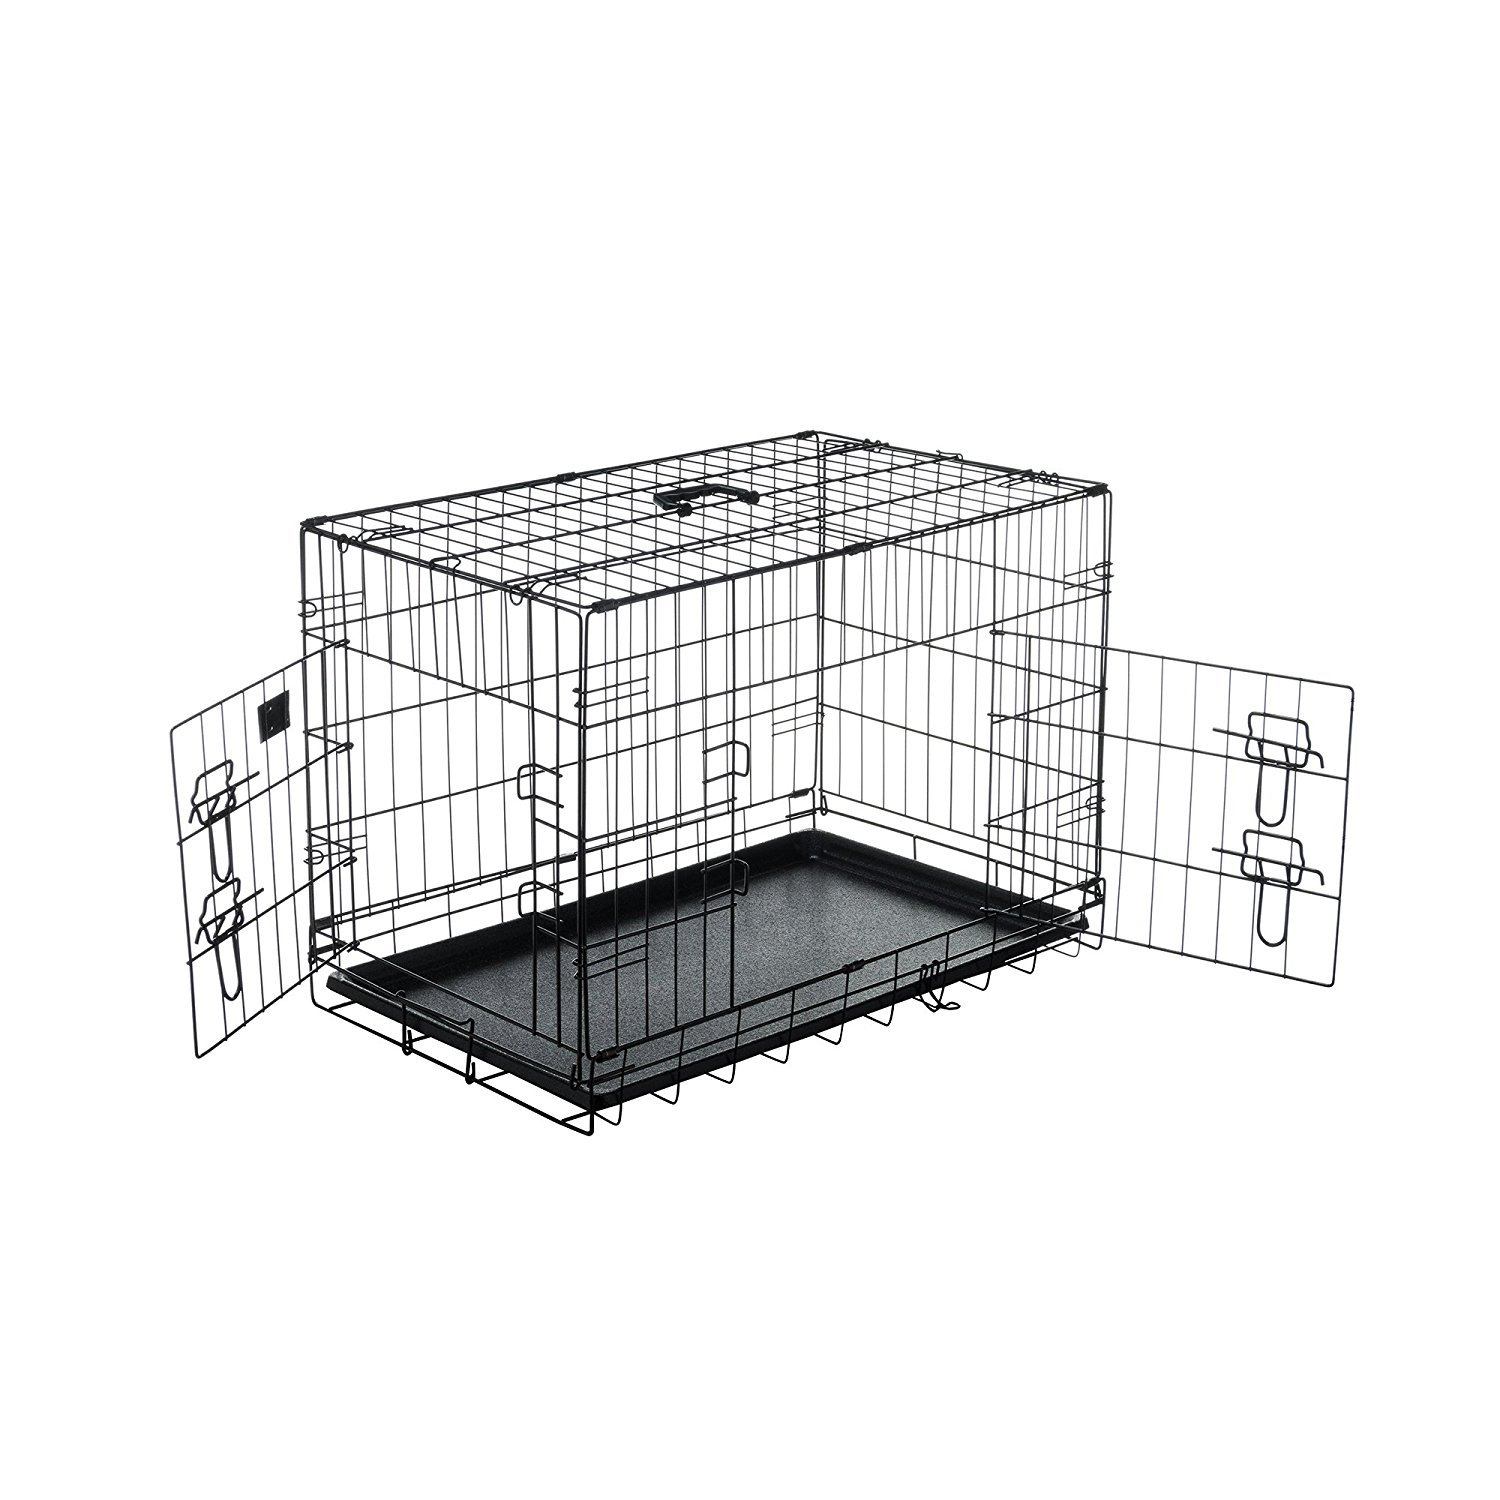 30 Inch Crate 2191 Pet Trex 30 Inch Folding Pet Crate, 2 Door Animal Kennel, 30  Dogs, Rabbits